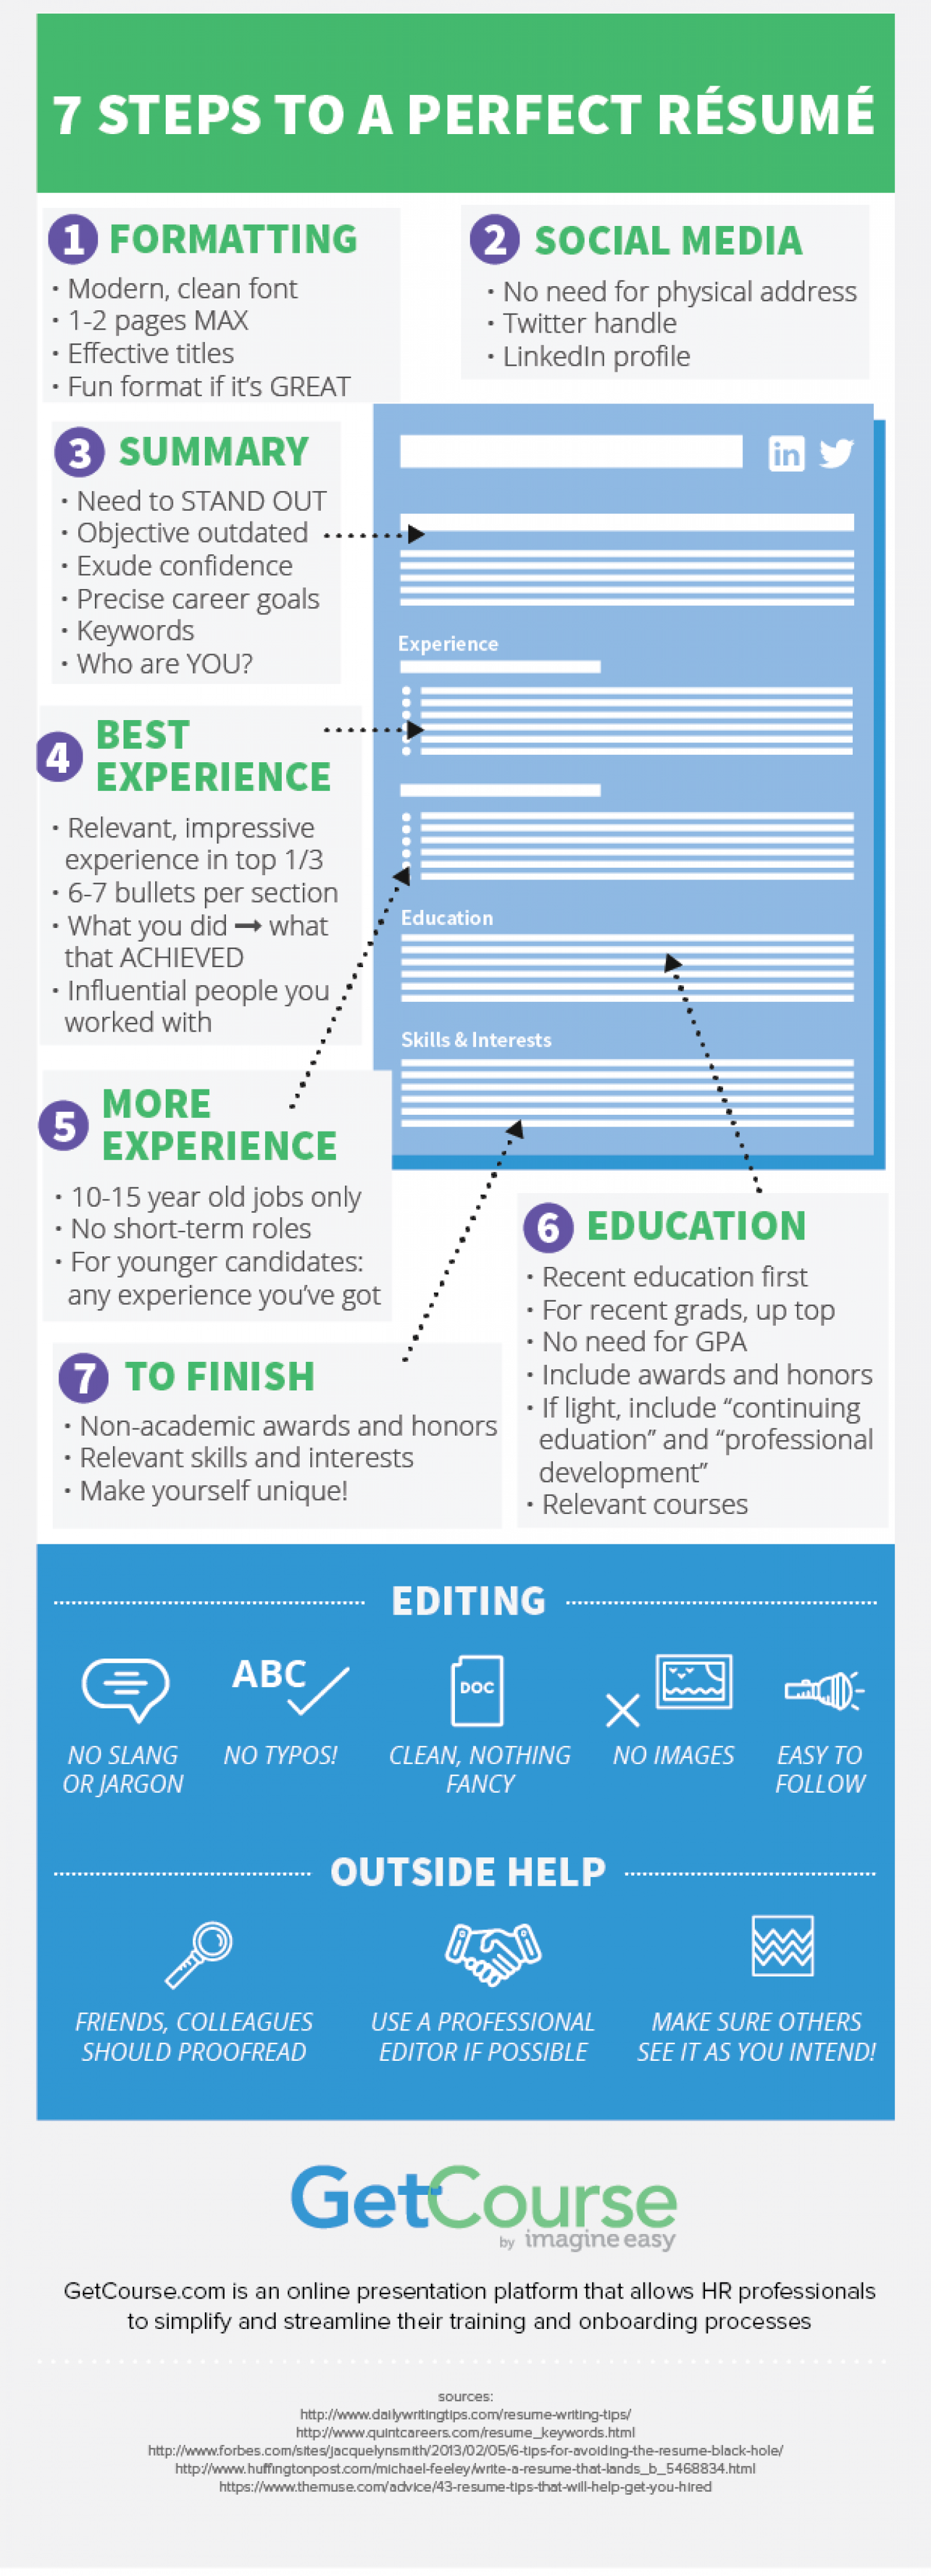 7 Steps to a Perfect Resume Infographic